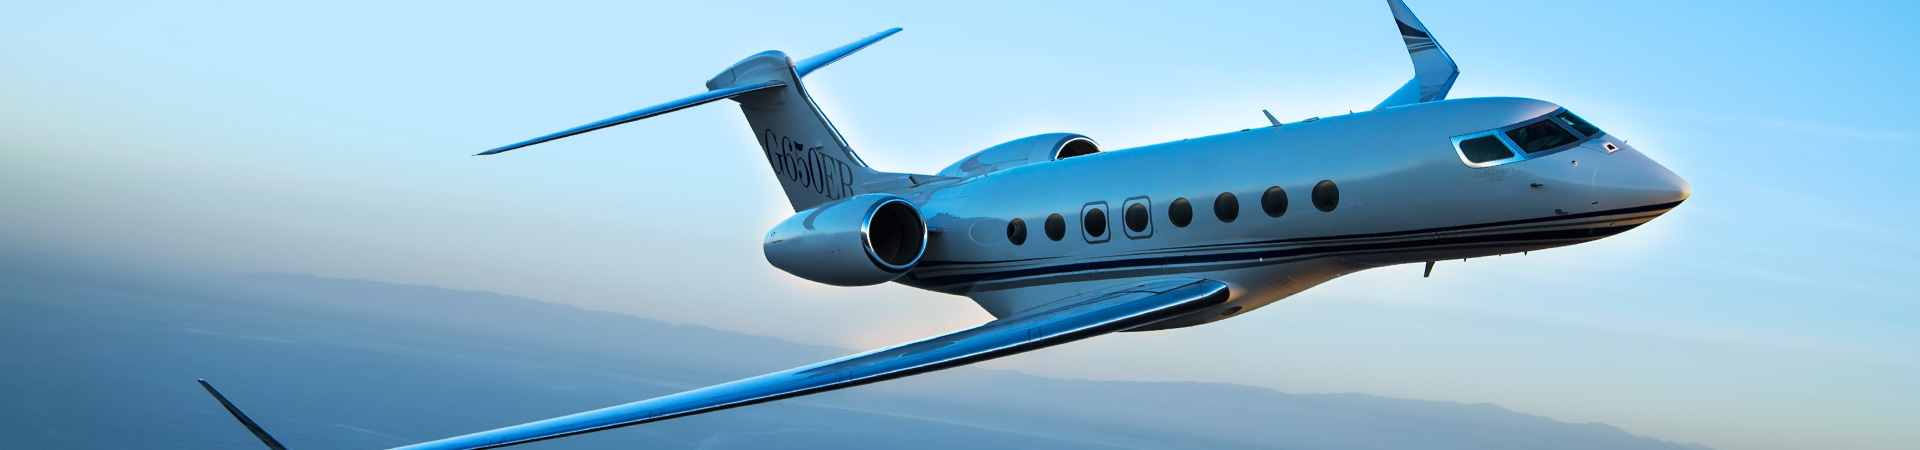 Starr Luxury Jets Long Range Private Jet Aircraft Hire